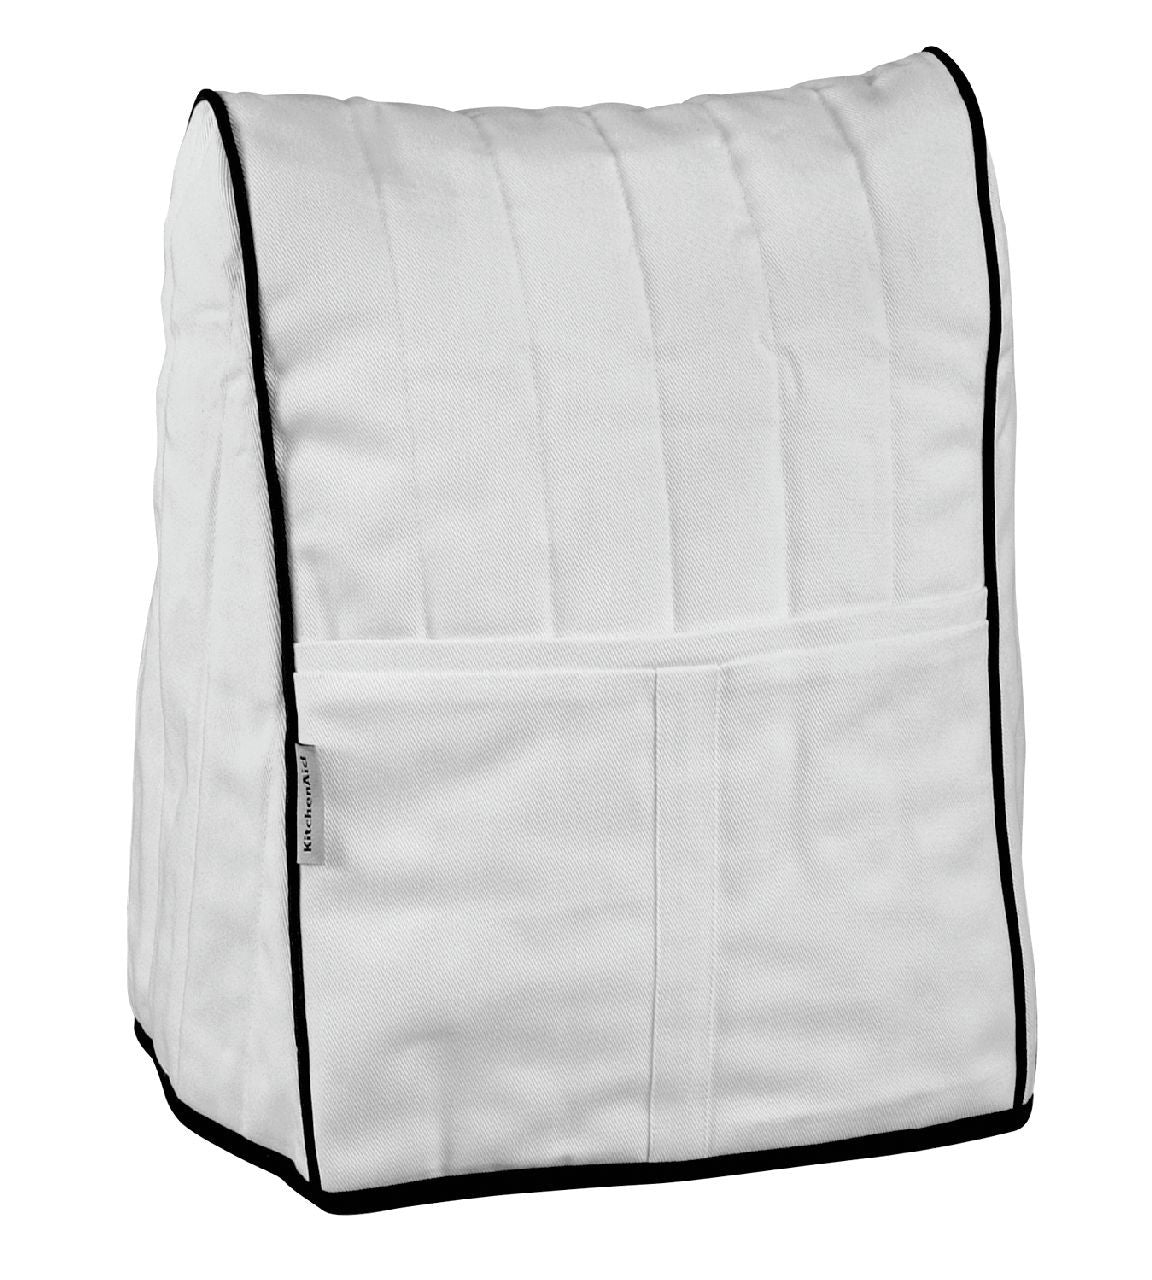 Kitchenaid Cloth Cover White With Black Piping KMCC1WH